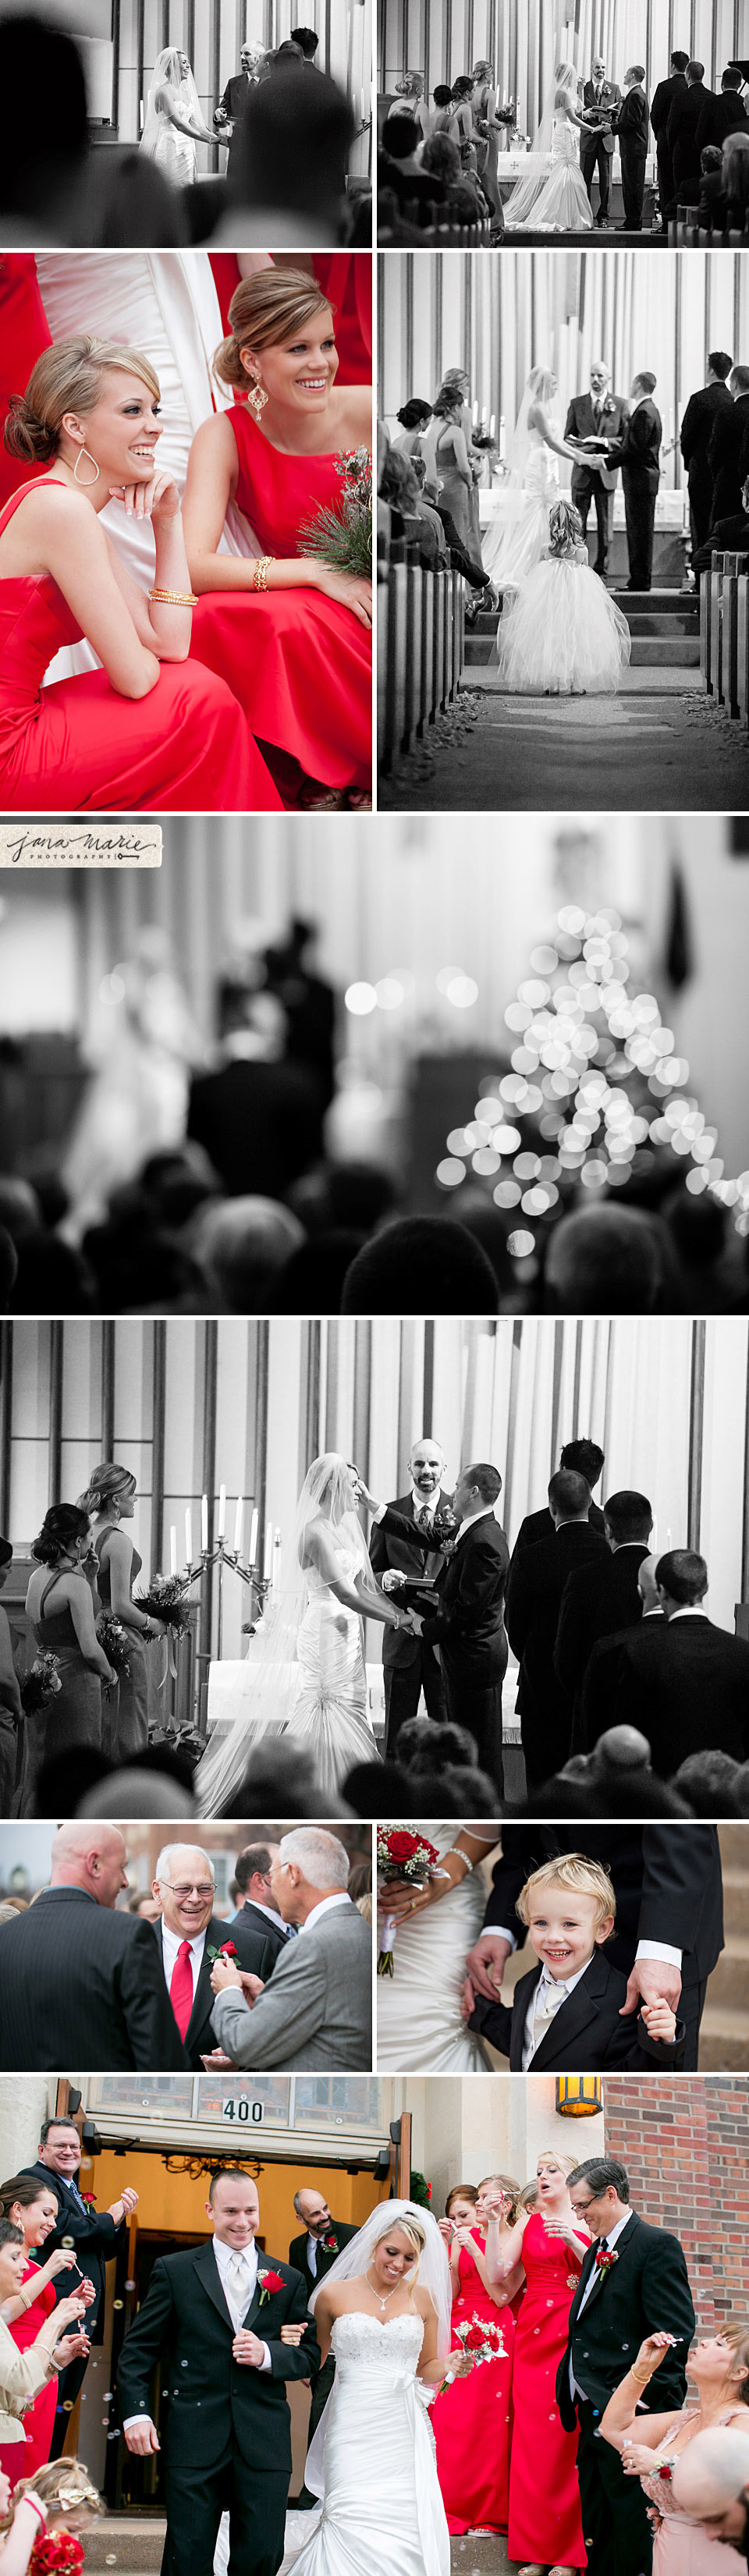 black and white photography, Independence weddings, Bubble exit